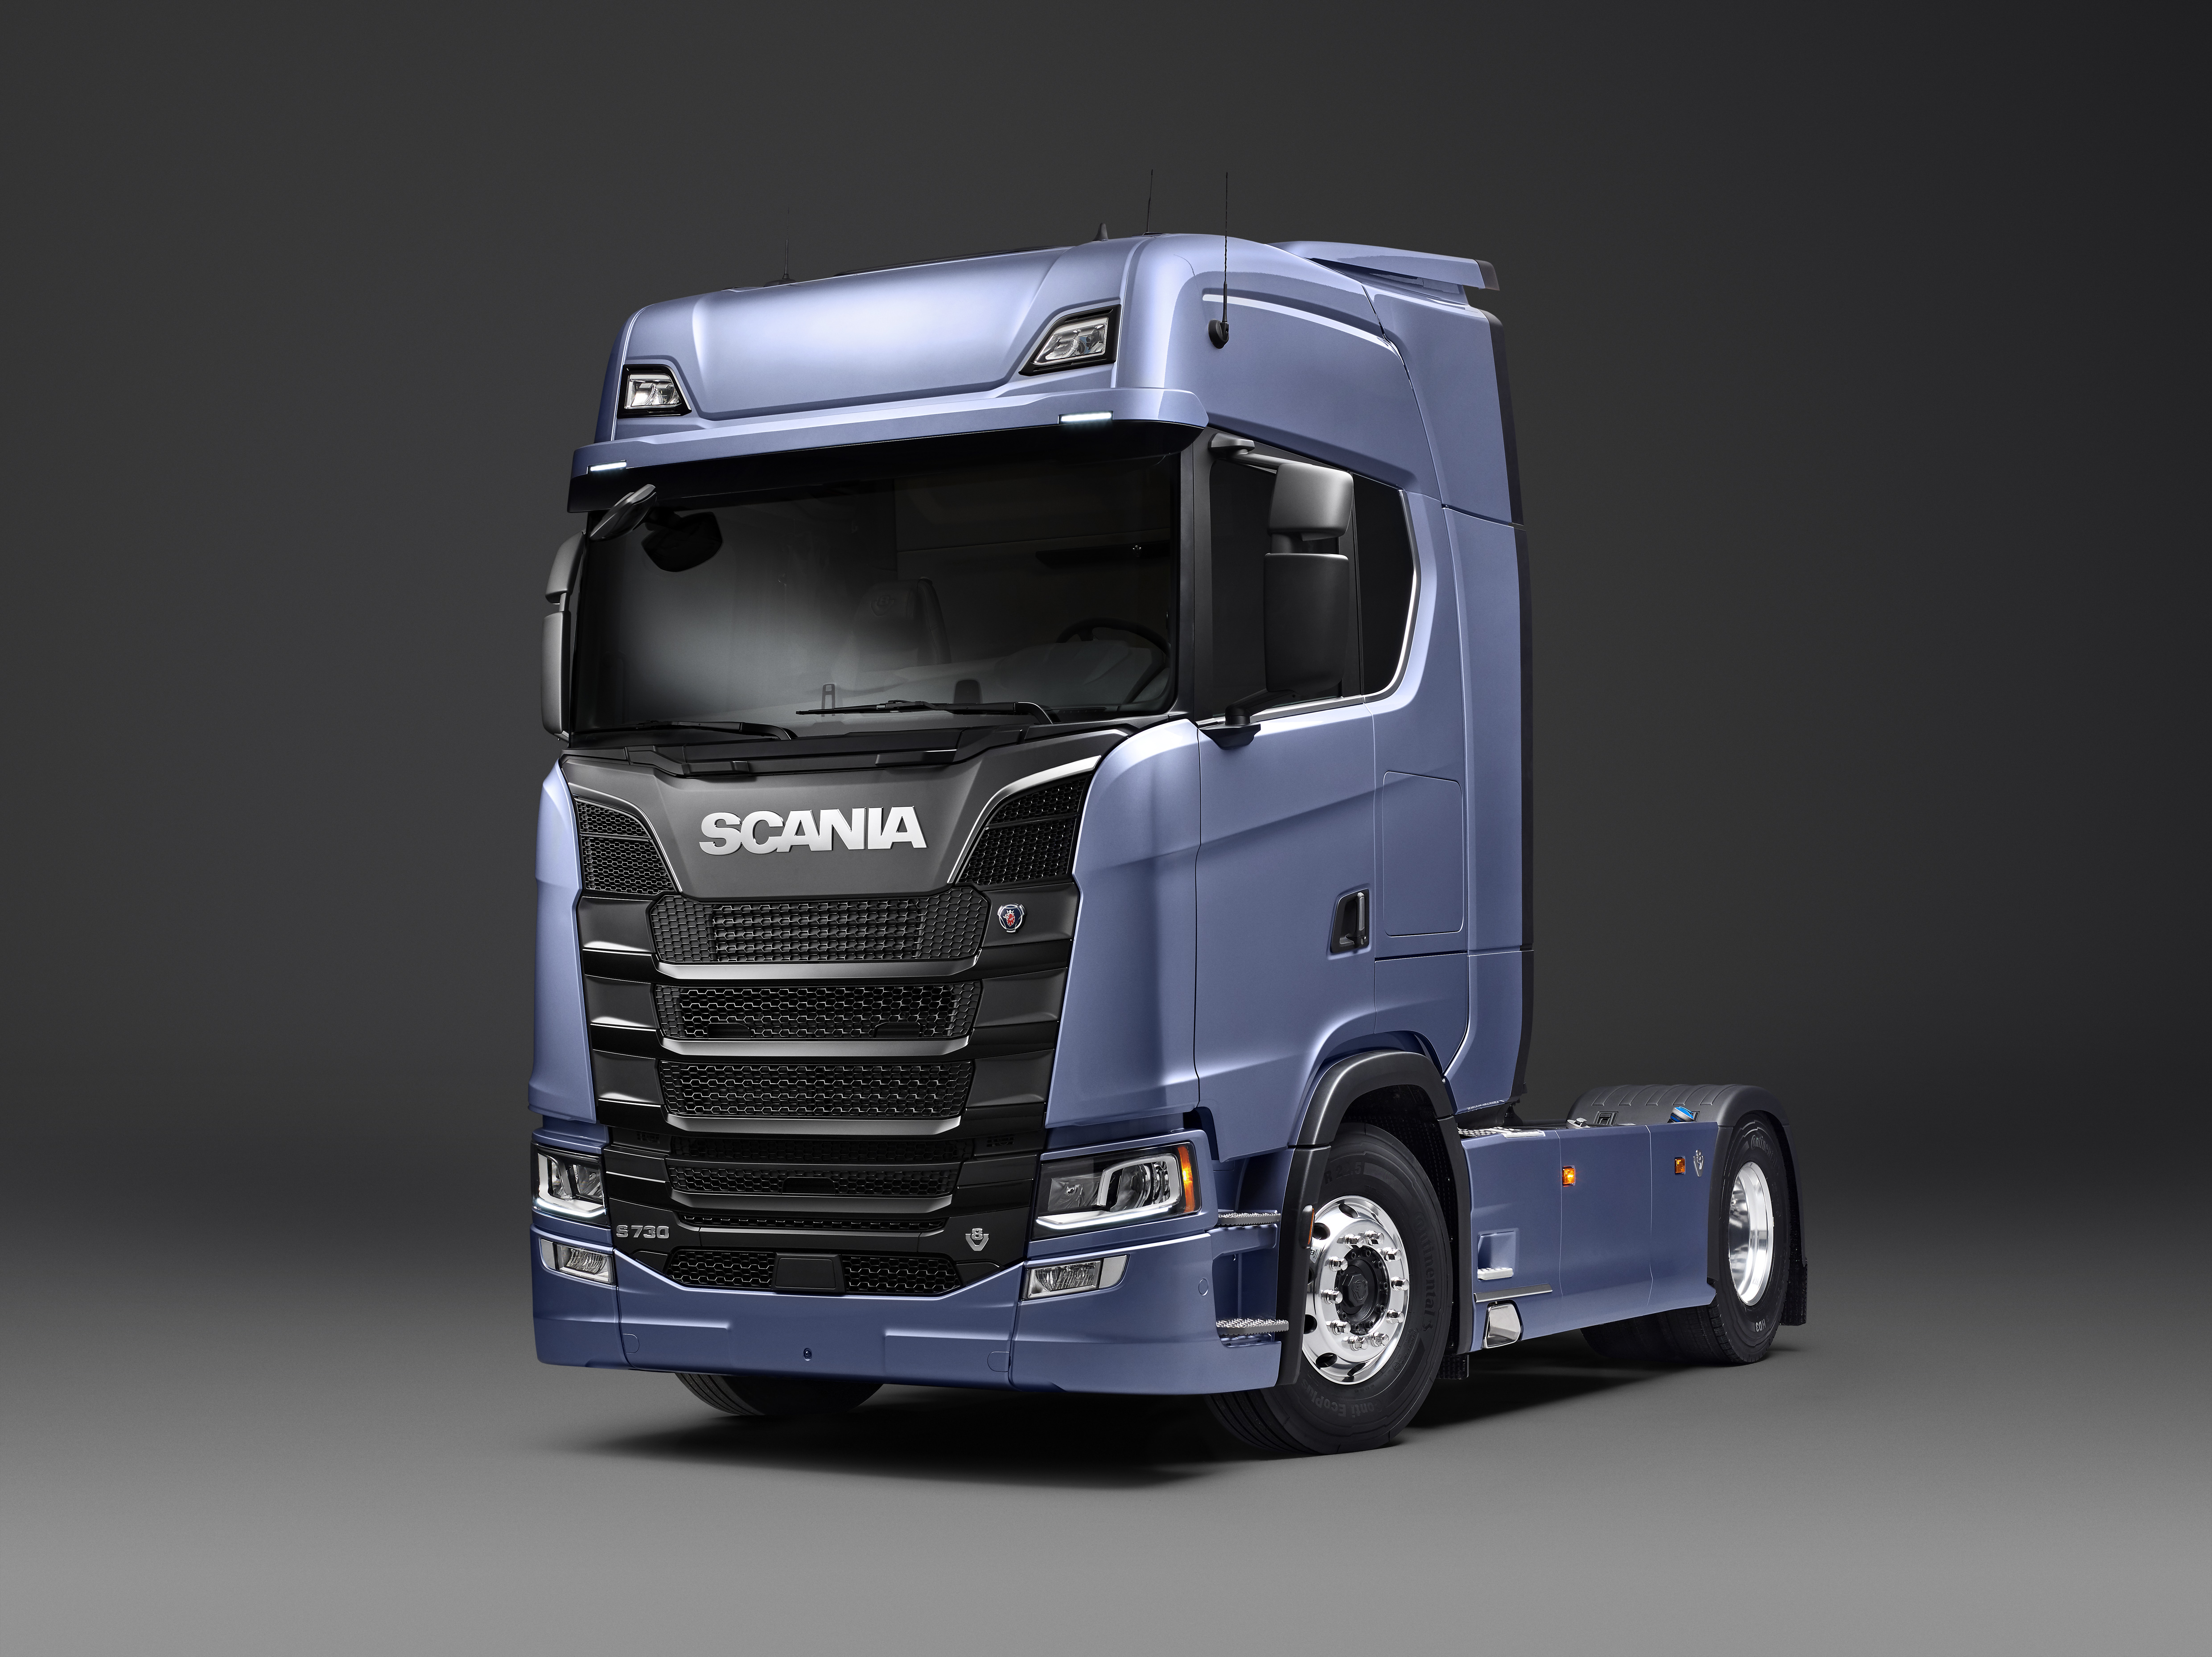 The New Scania Truck Generation